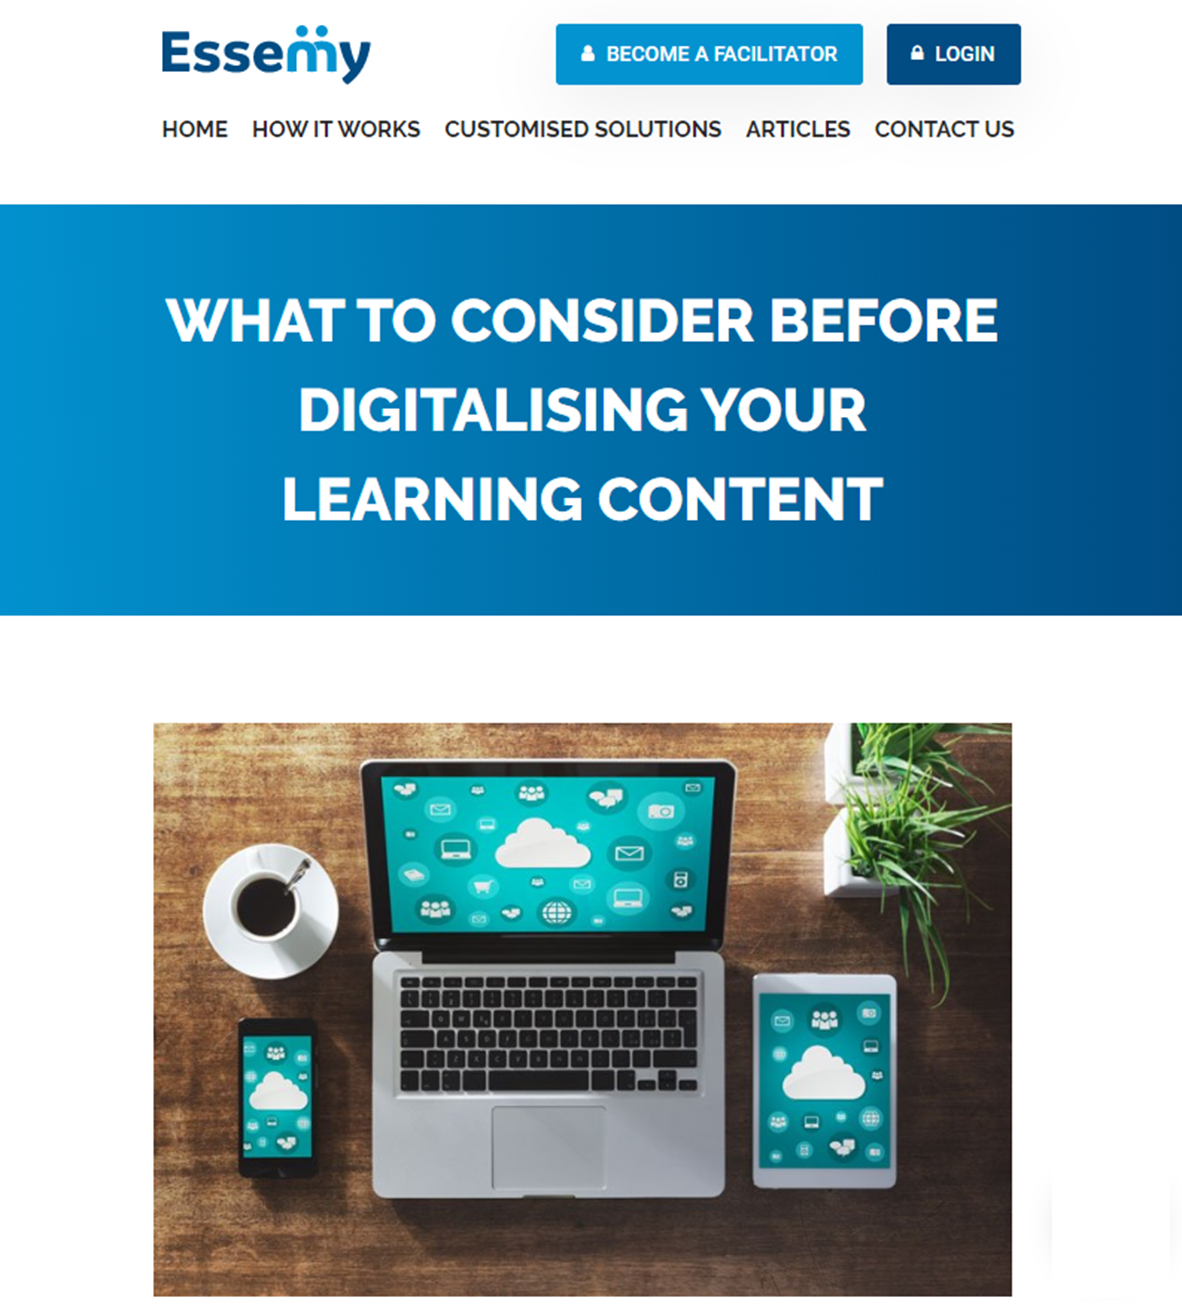 Digitalising learning content